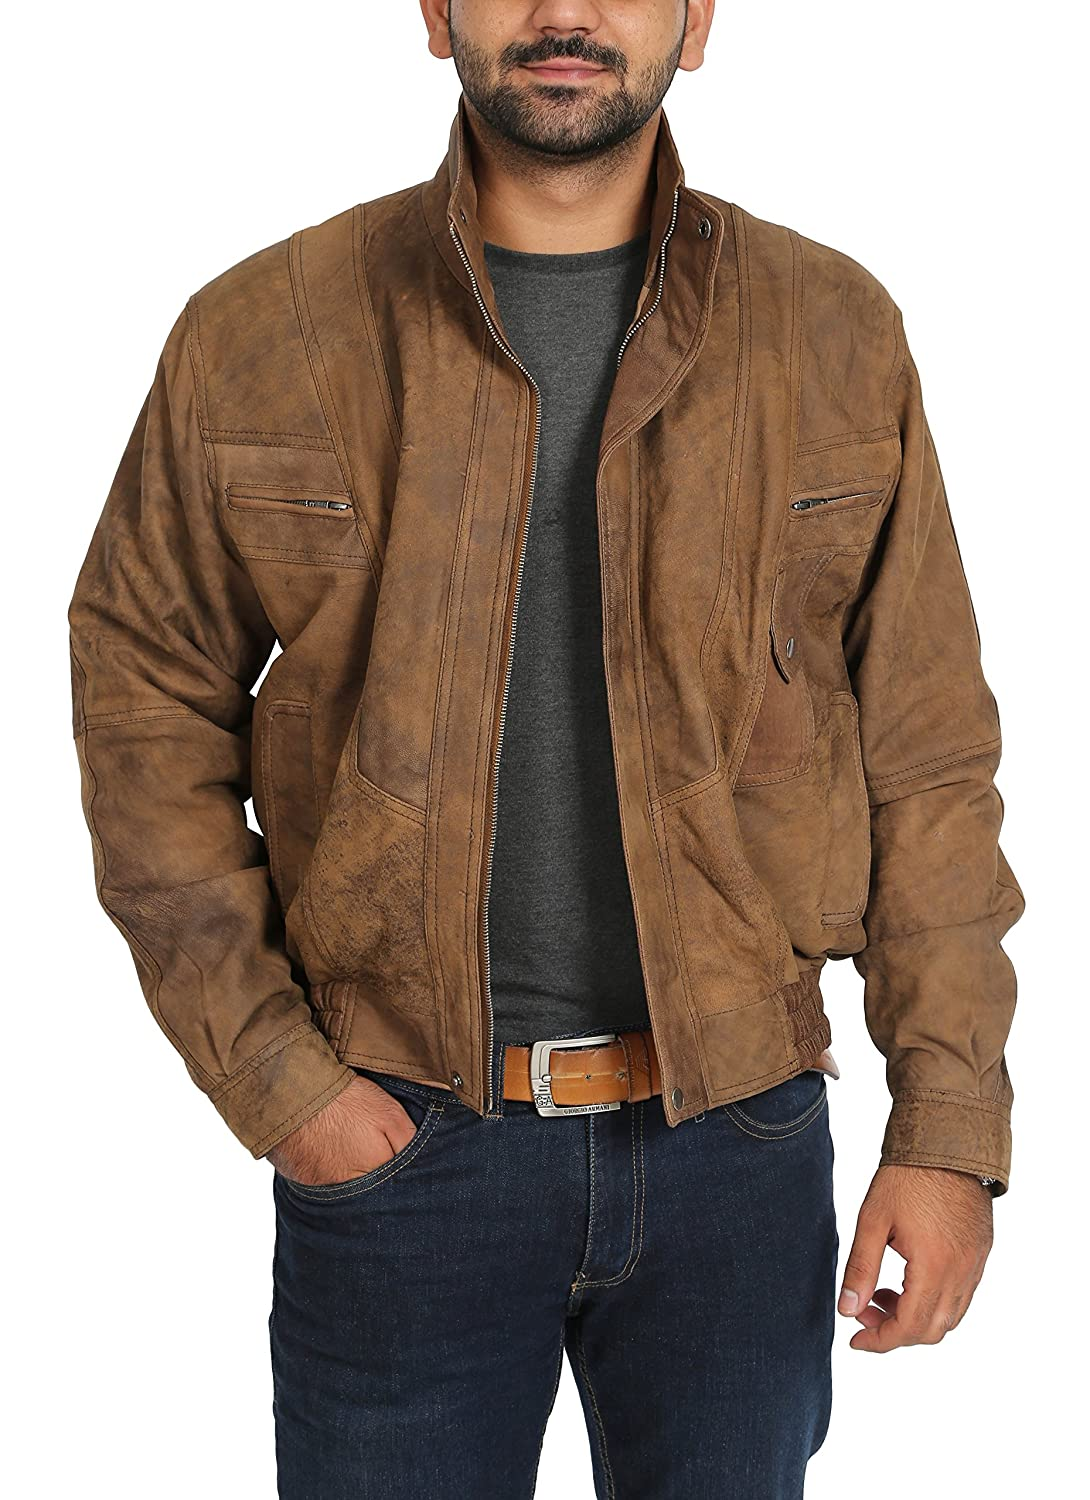 Mens Bomber Blouson Style Classic Antique Leather Jacket Robert Brown House of Leather